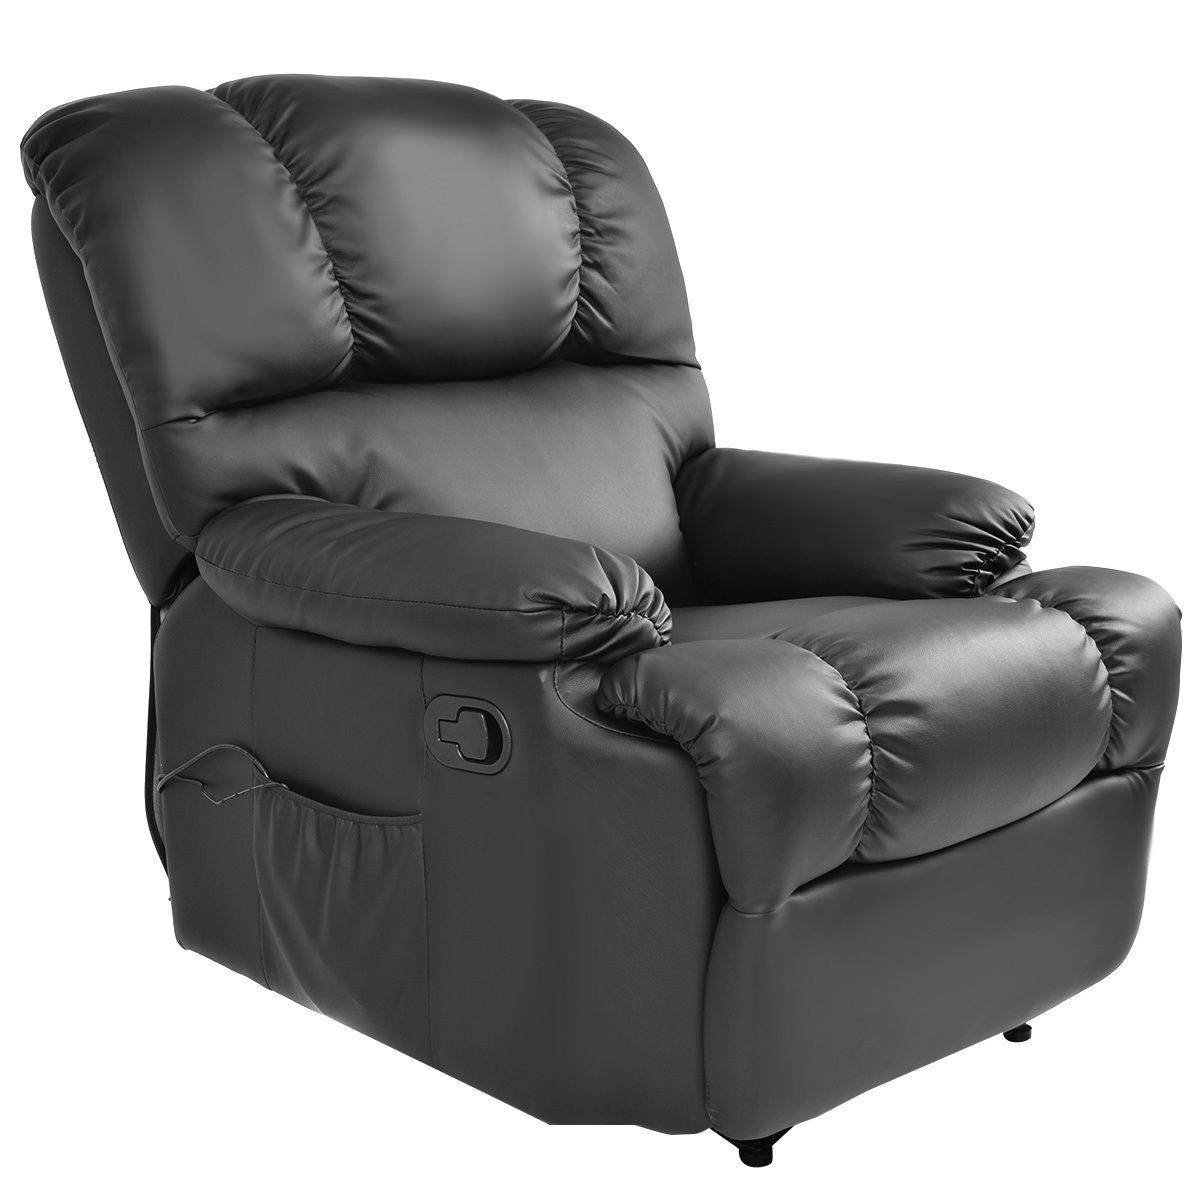 Recliner Massage Sofa Chair Deluxe Ergonomic Lounge Couch Heated W throughout Sofa Chair Recliner (Image 23 of 30)